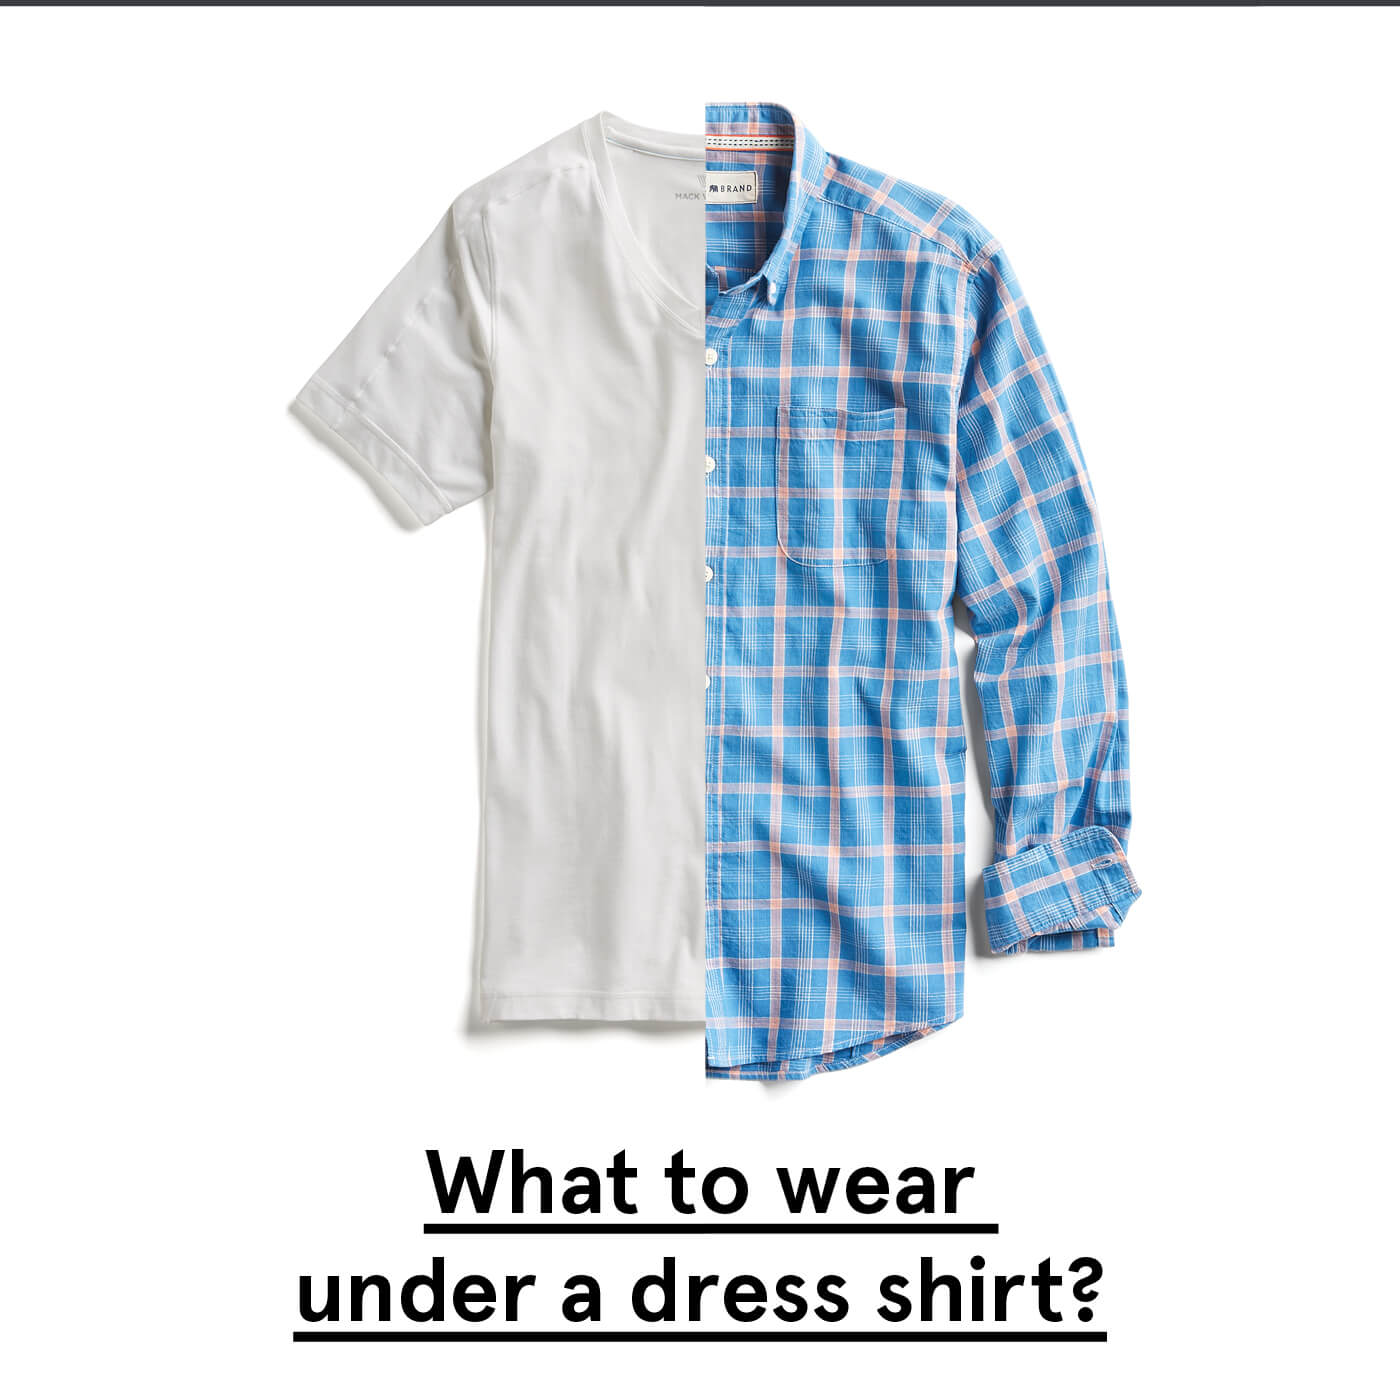 to wear - Wear to what under thin dress shirt video